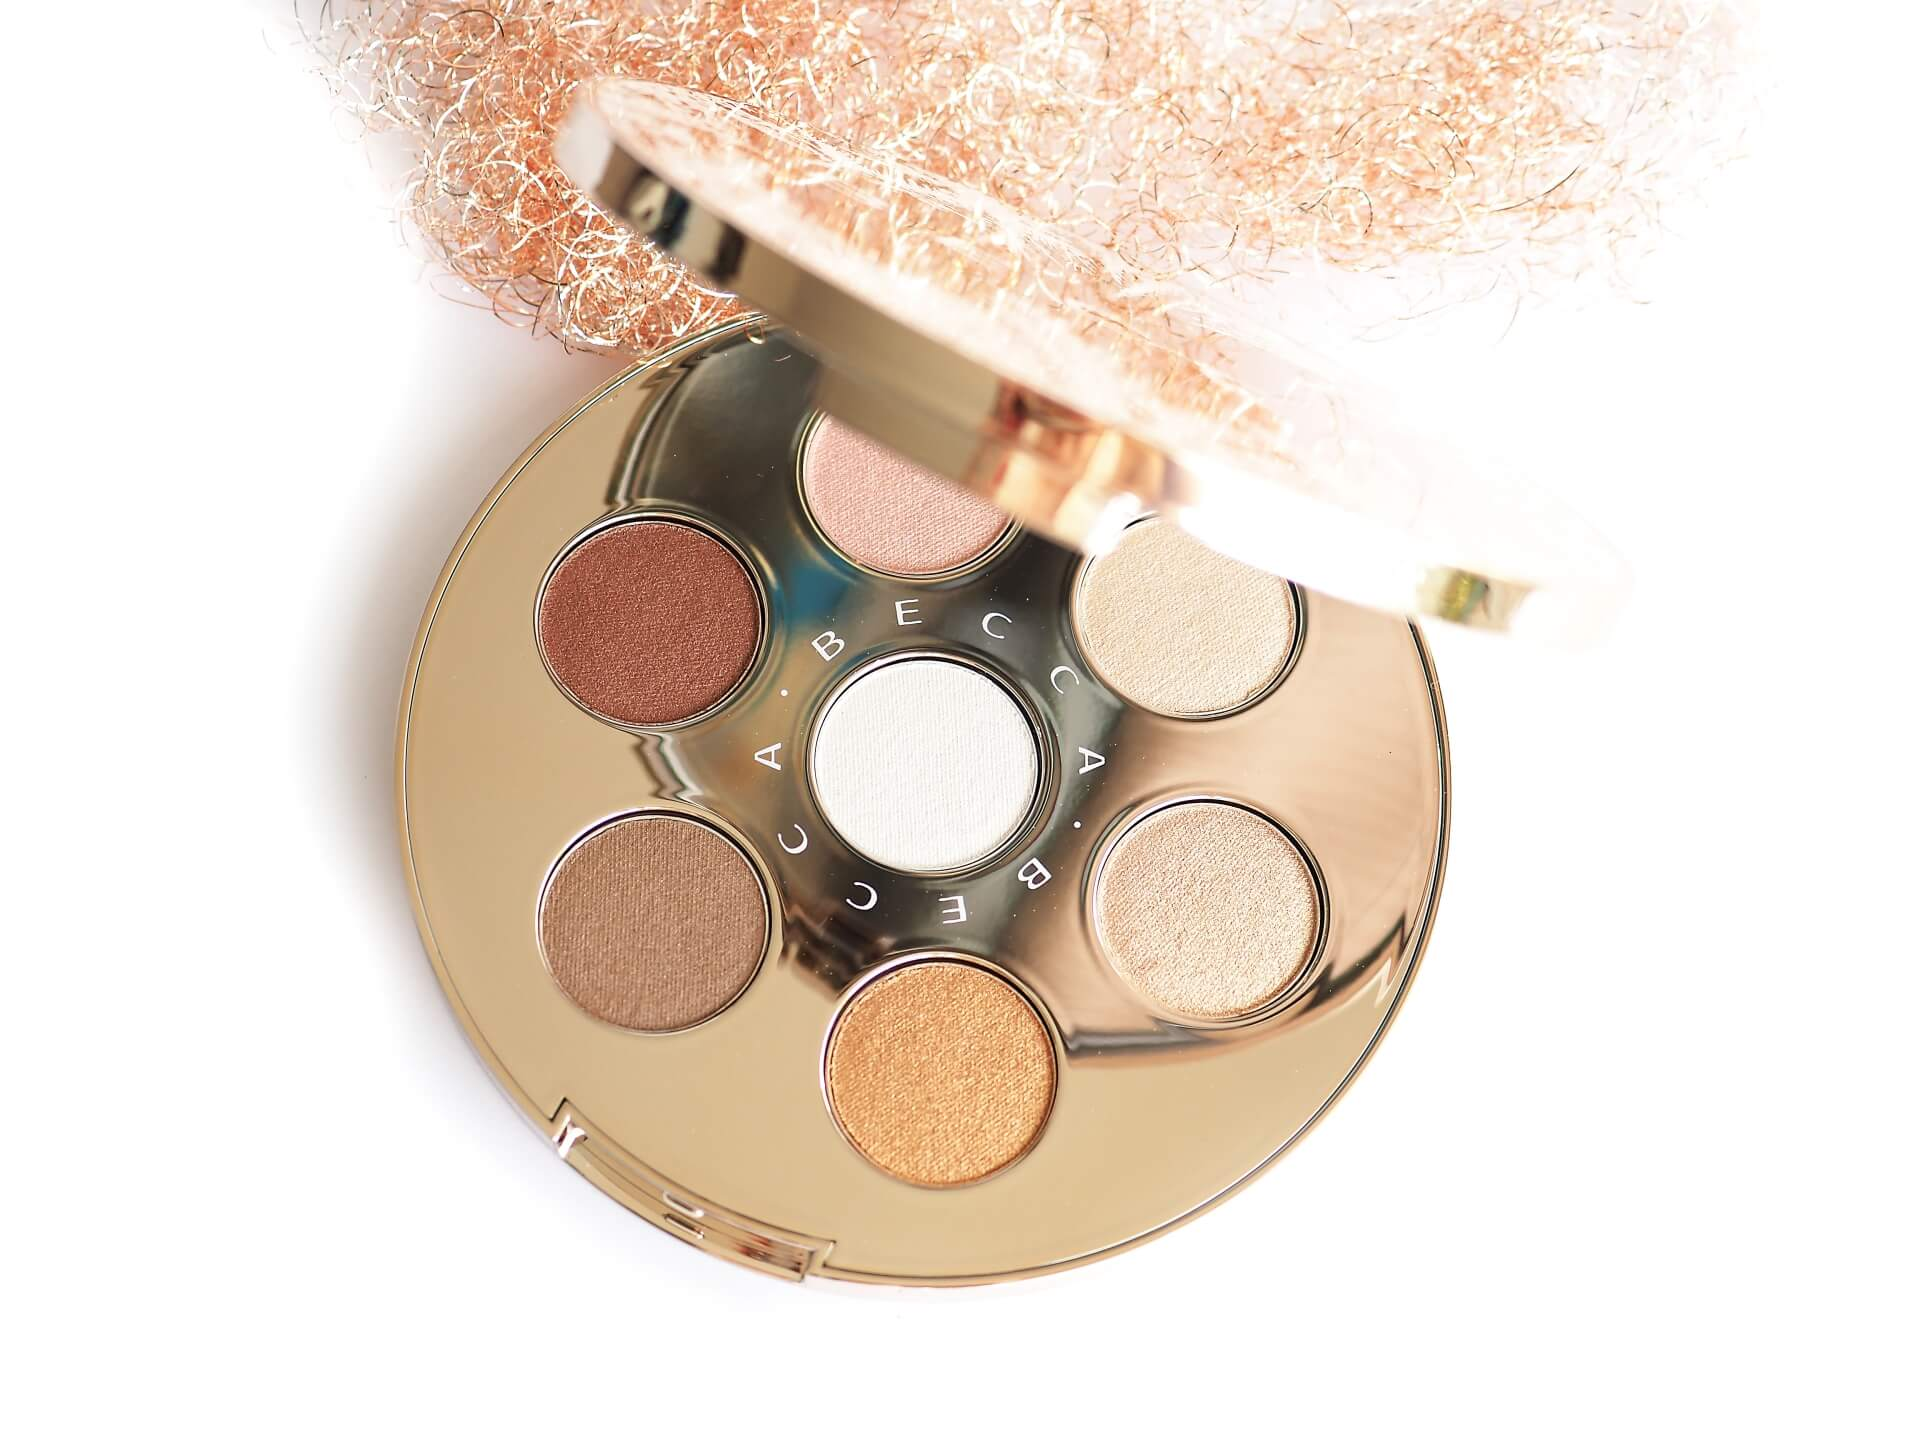 Becca Eye Light Palette Apres Ski Glow Collection